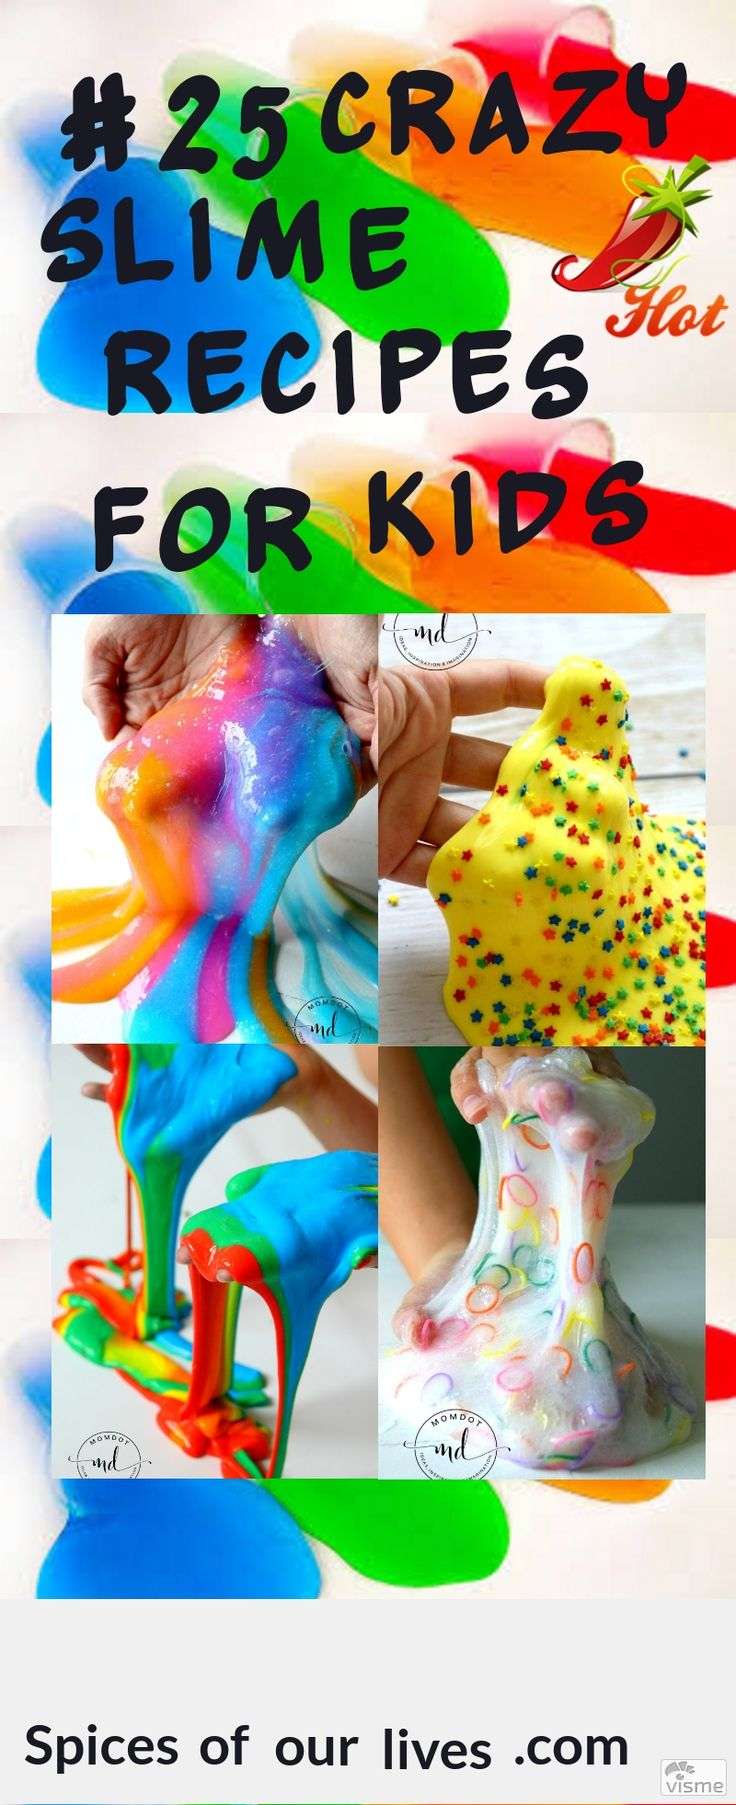 25 crazy slime recipes for kids. Birthday slime, rainbow explosion slime, slime painting diy, kinetic slime diy recipe and expirment, make bubble slime blow slime bubbles, sprinkle slime recipe, fairy slime, shooting star slime, loom bands slime and toutrial